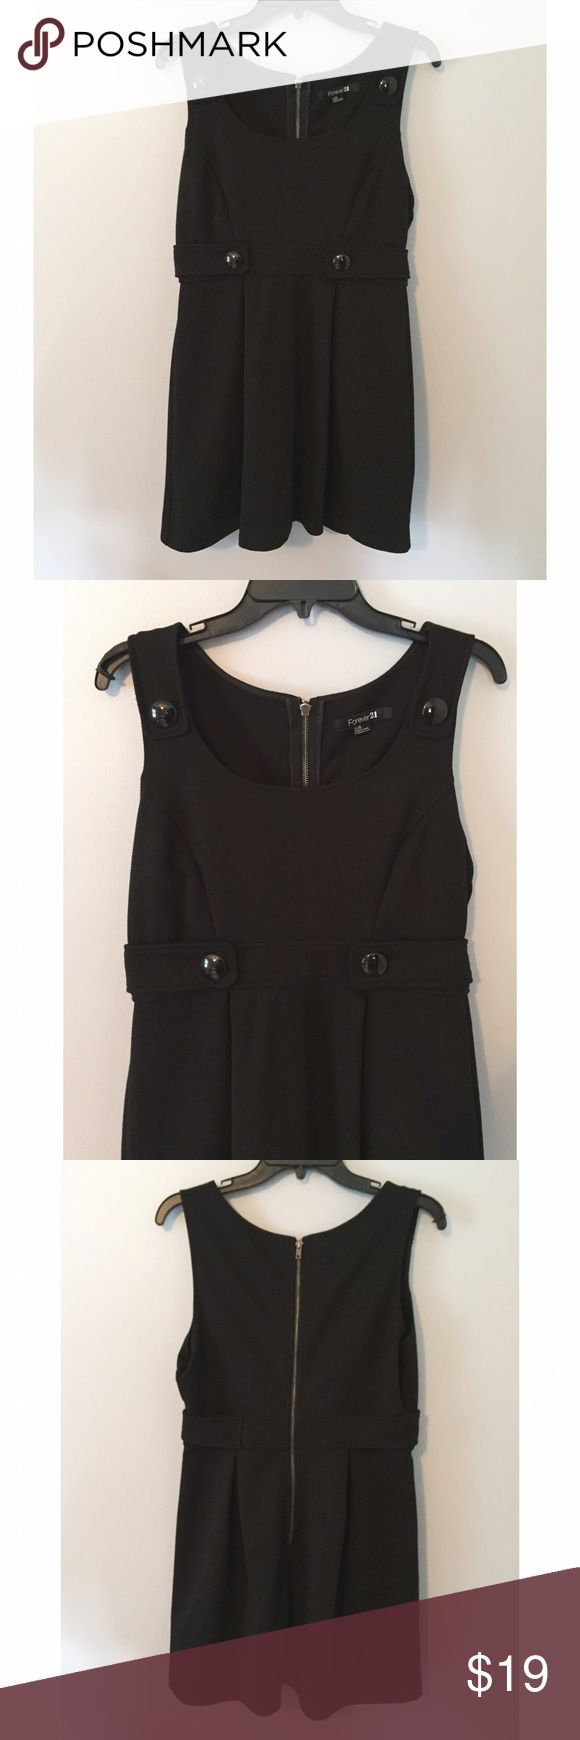 Forever 21 Black Jumper Dress Gently worn. Very cute with a long sleeve white shirt! Forever 21 Dresses Mini